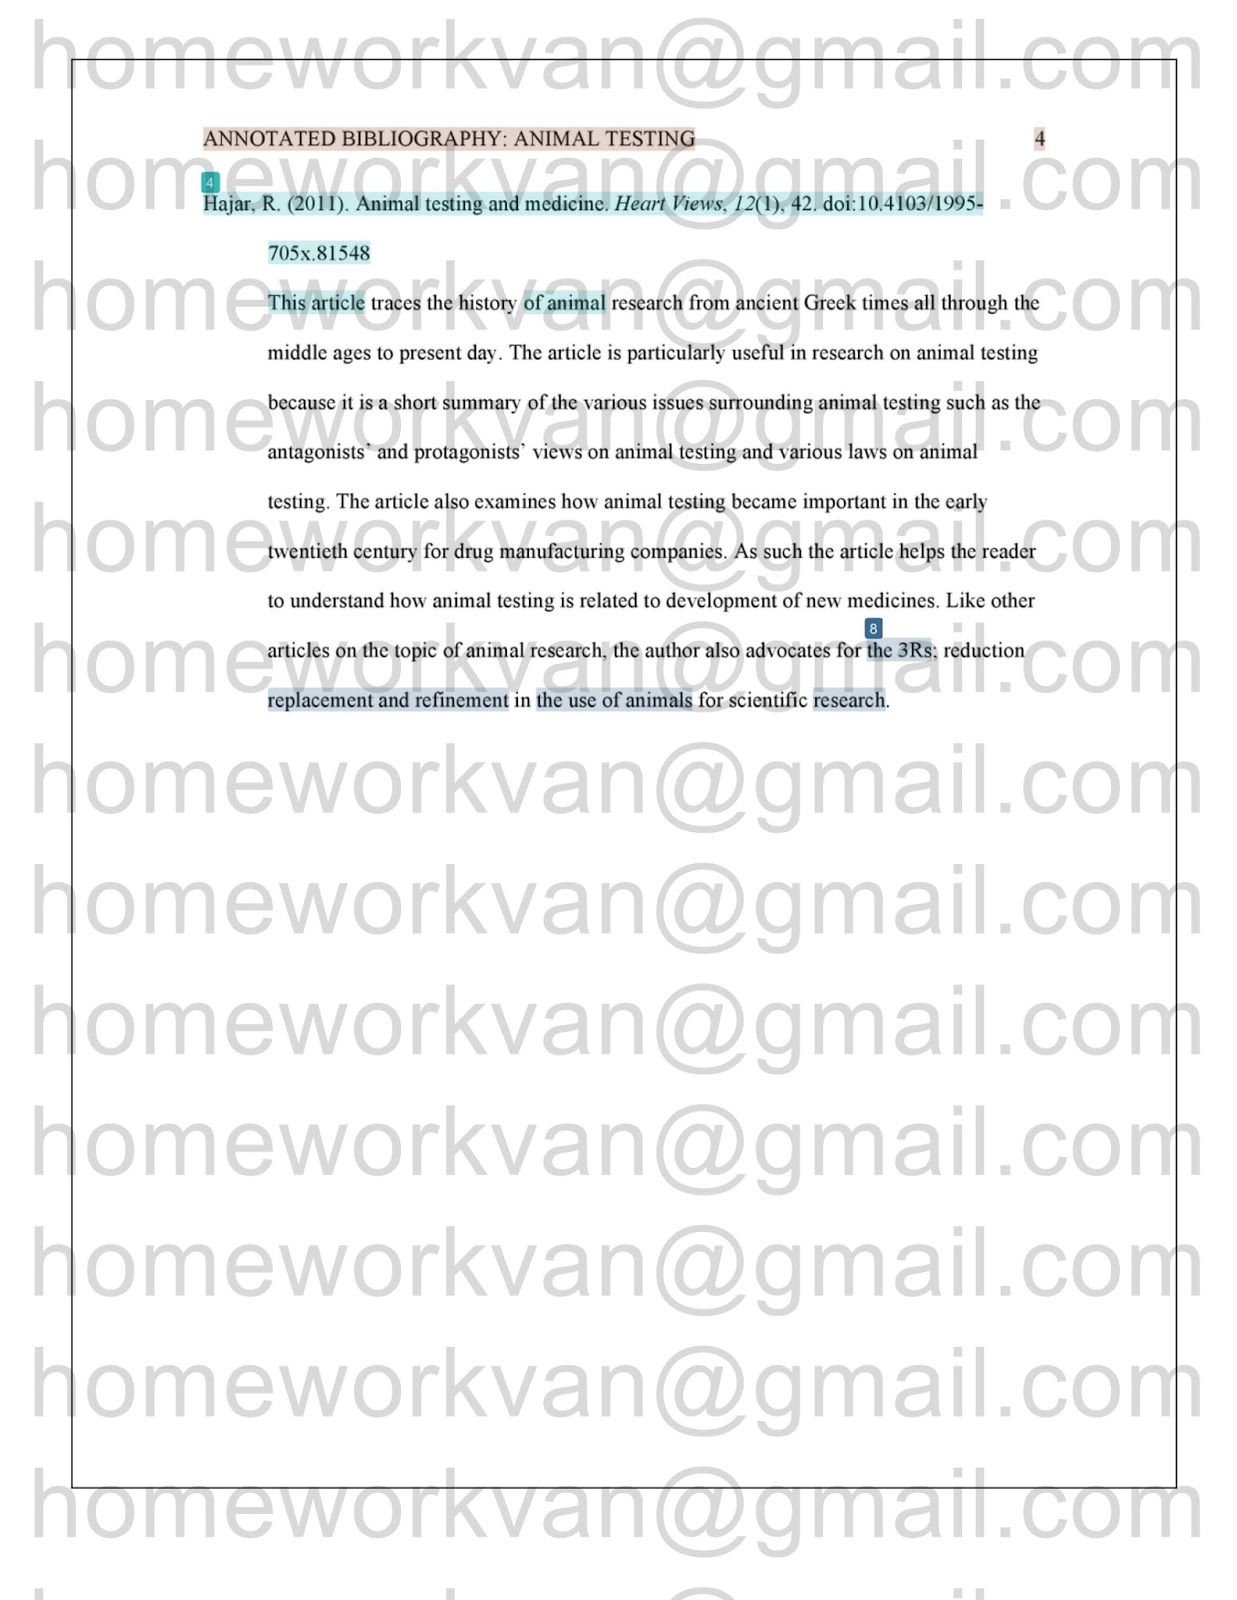 010 Homeworkvan2bannotated 3 Research Paper Animal Testing Awful Questions Full